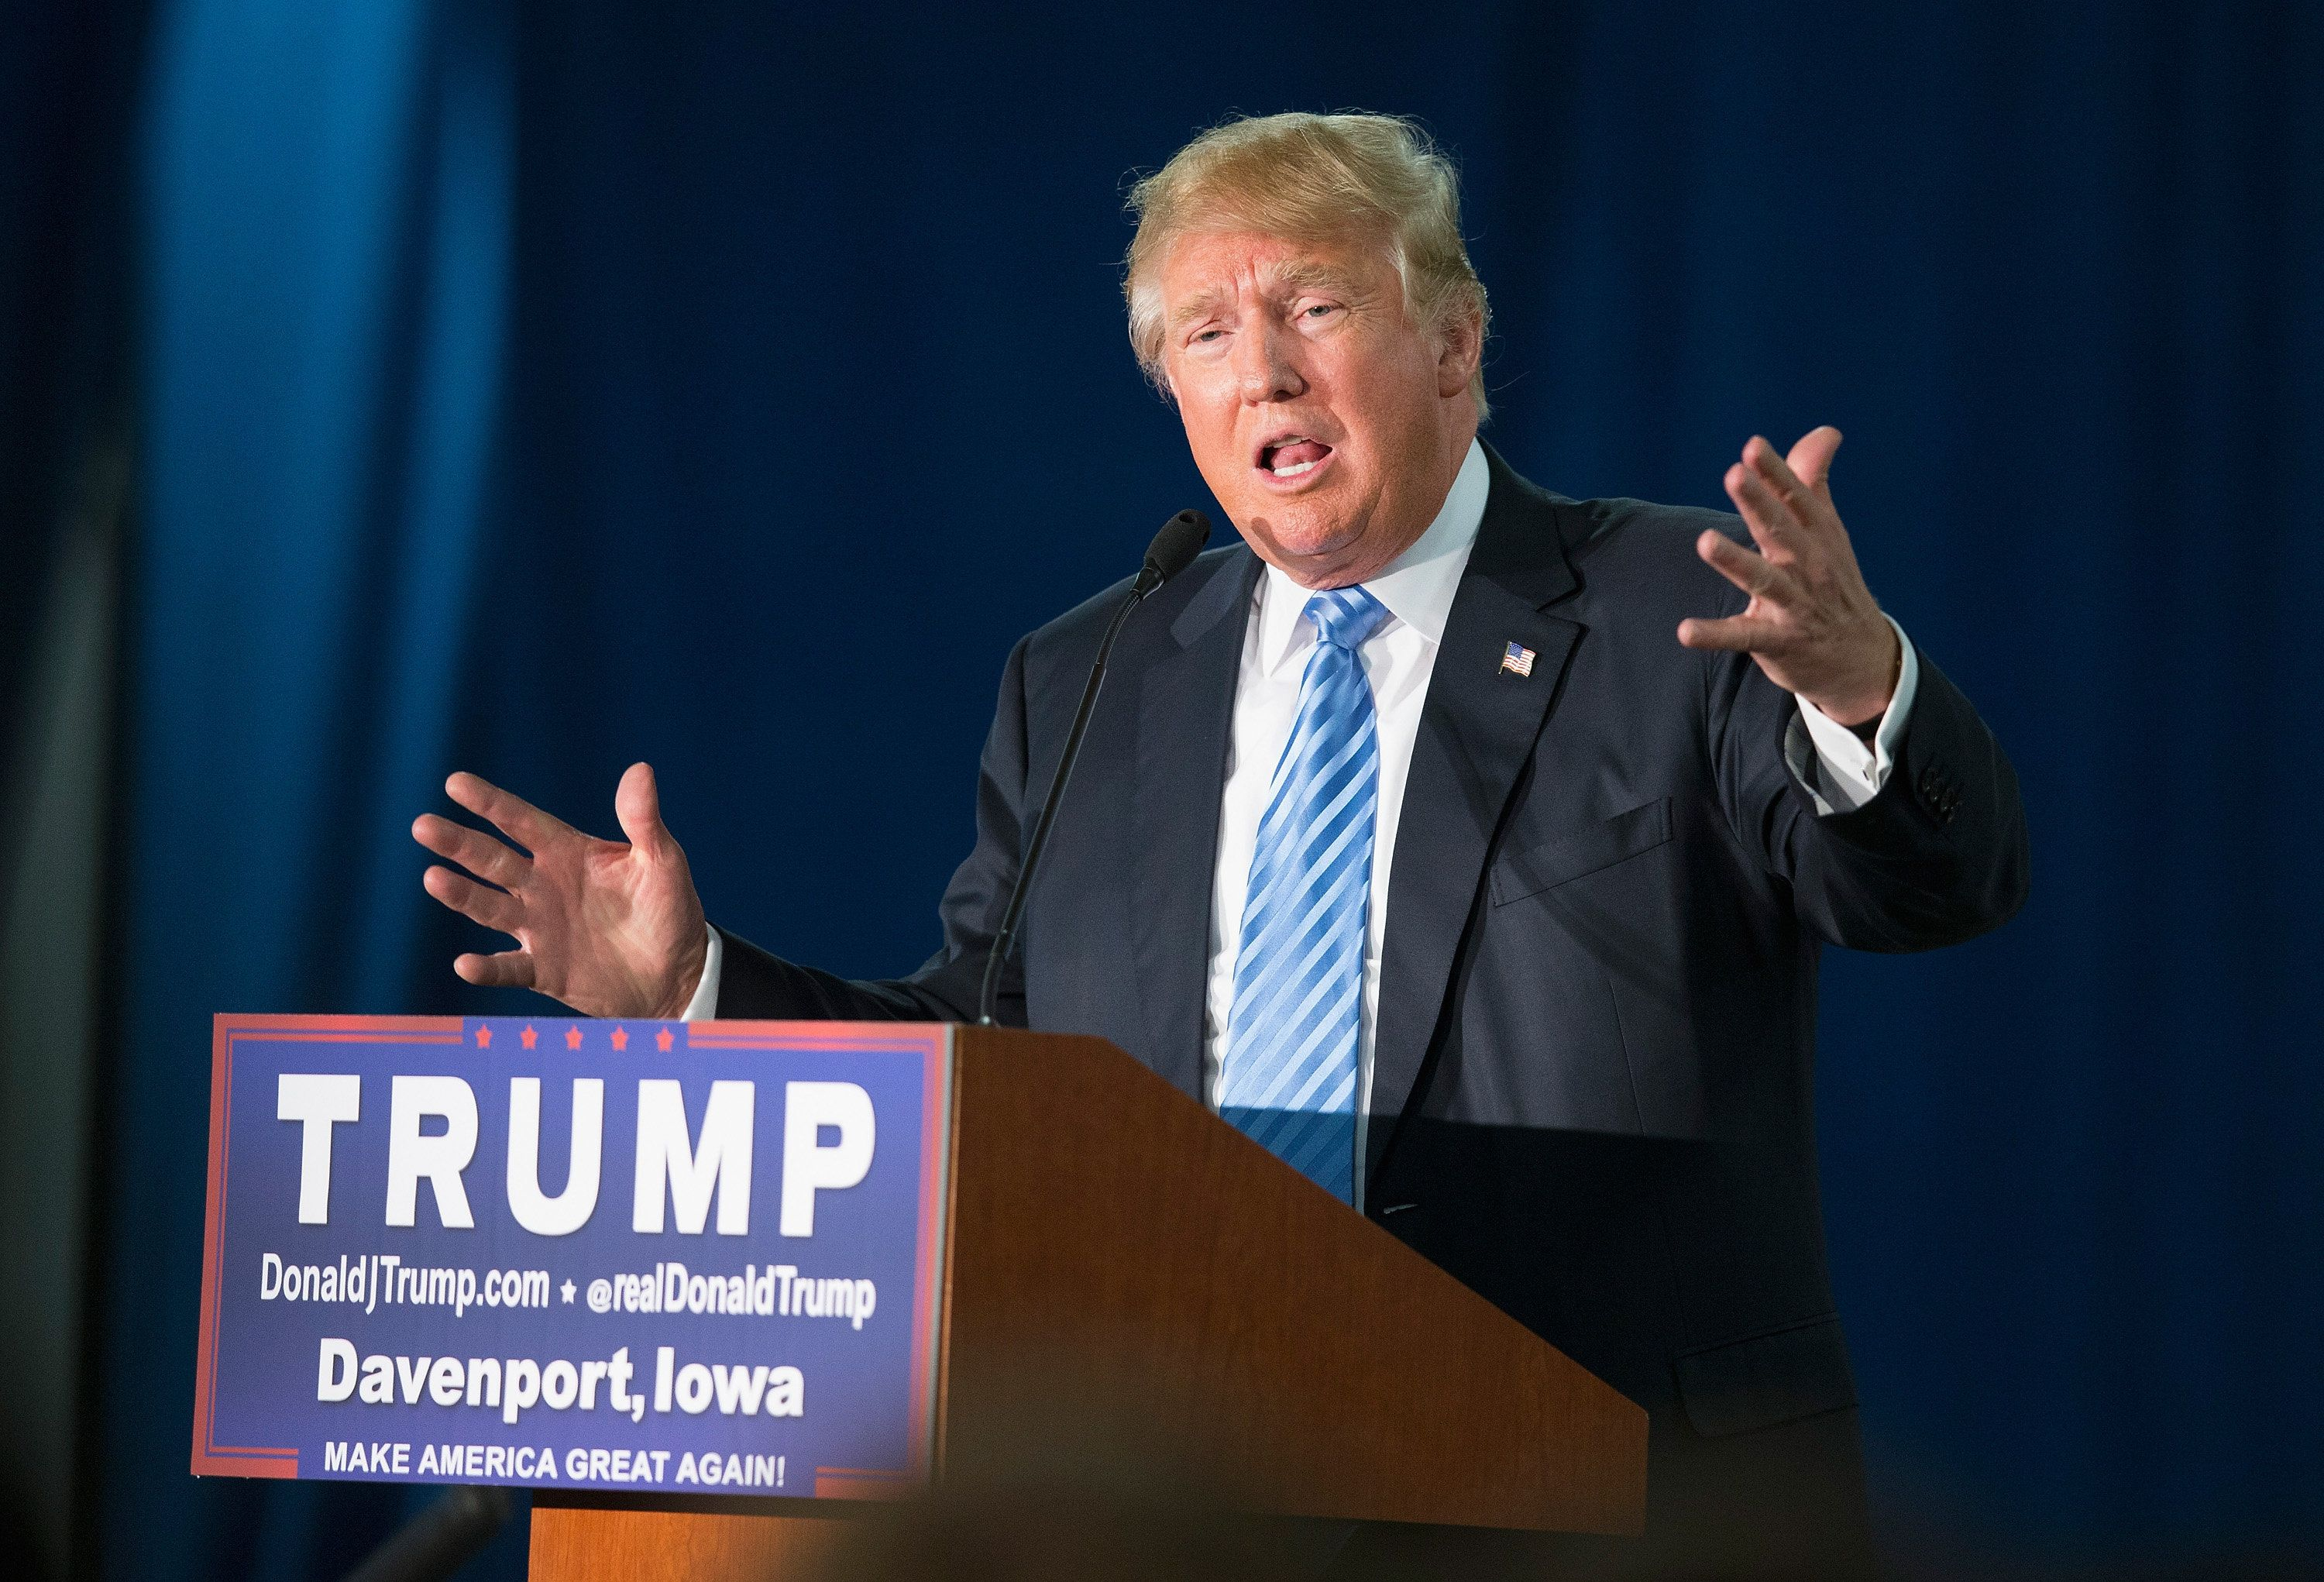 Nearly sixin 10Americans oppose Donald Trump's plan to ban Muslims from entering the U.S.